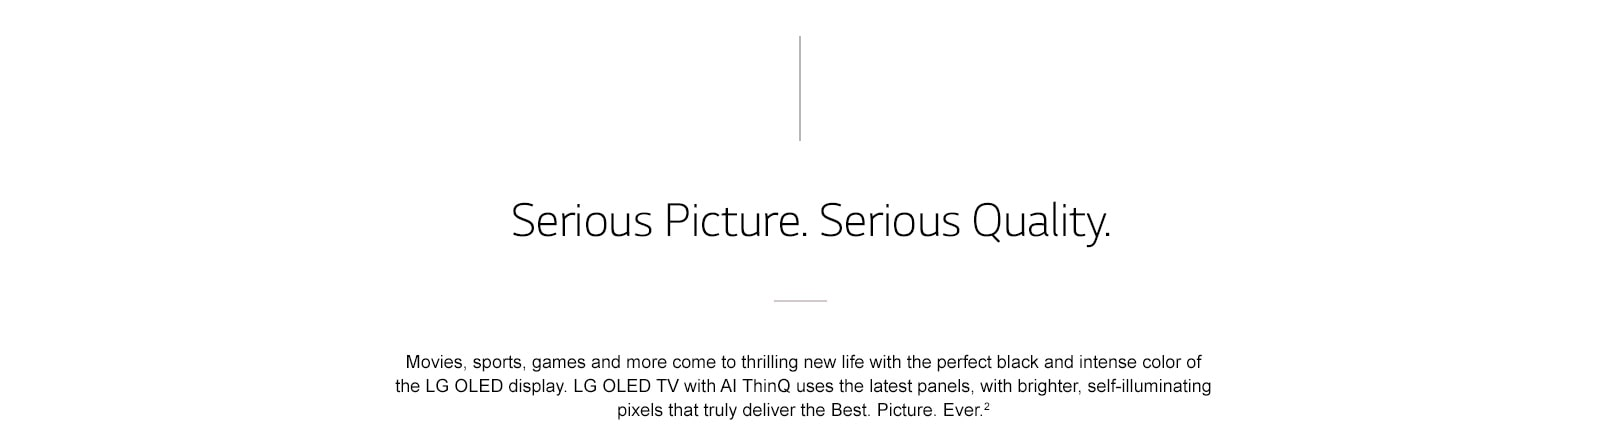 Serious Picture. Serious Quality. - A television should make everyone stop and take notice. Whether it's enjoying your favorite shows and movies or impressing your friends, experience the unrivaled picture quality of the LG OLED.